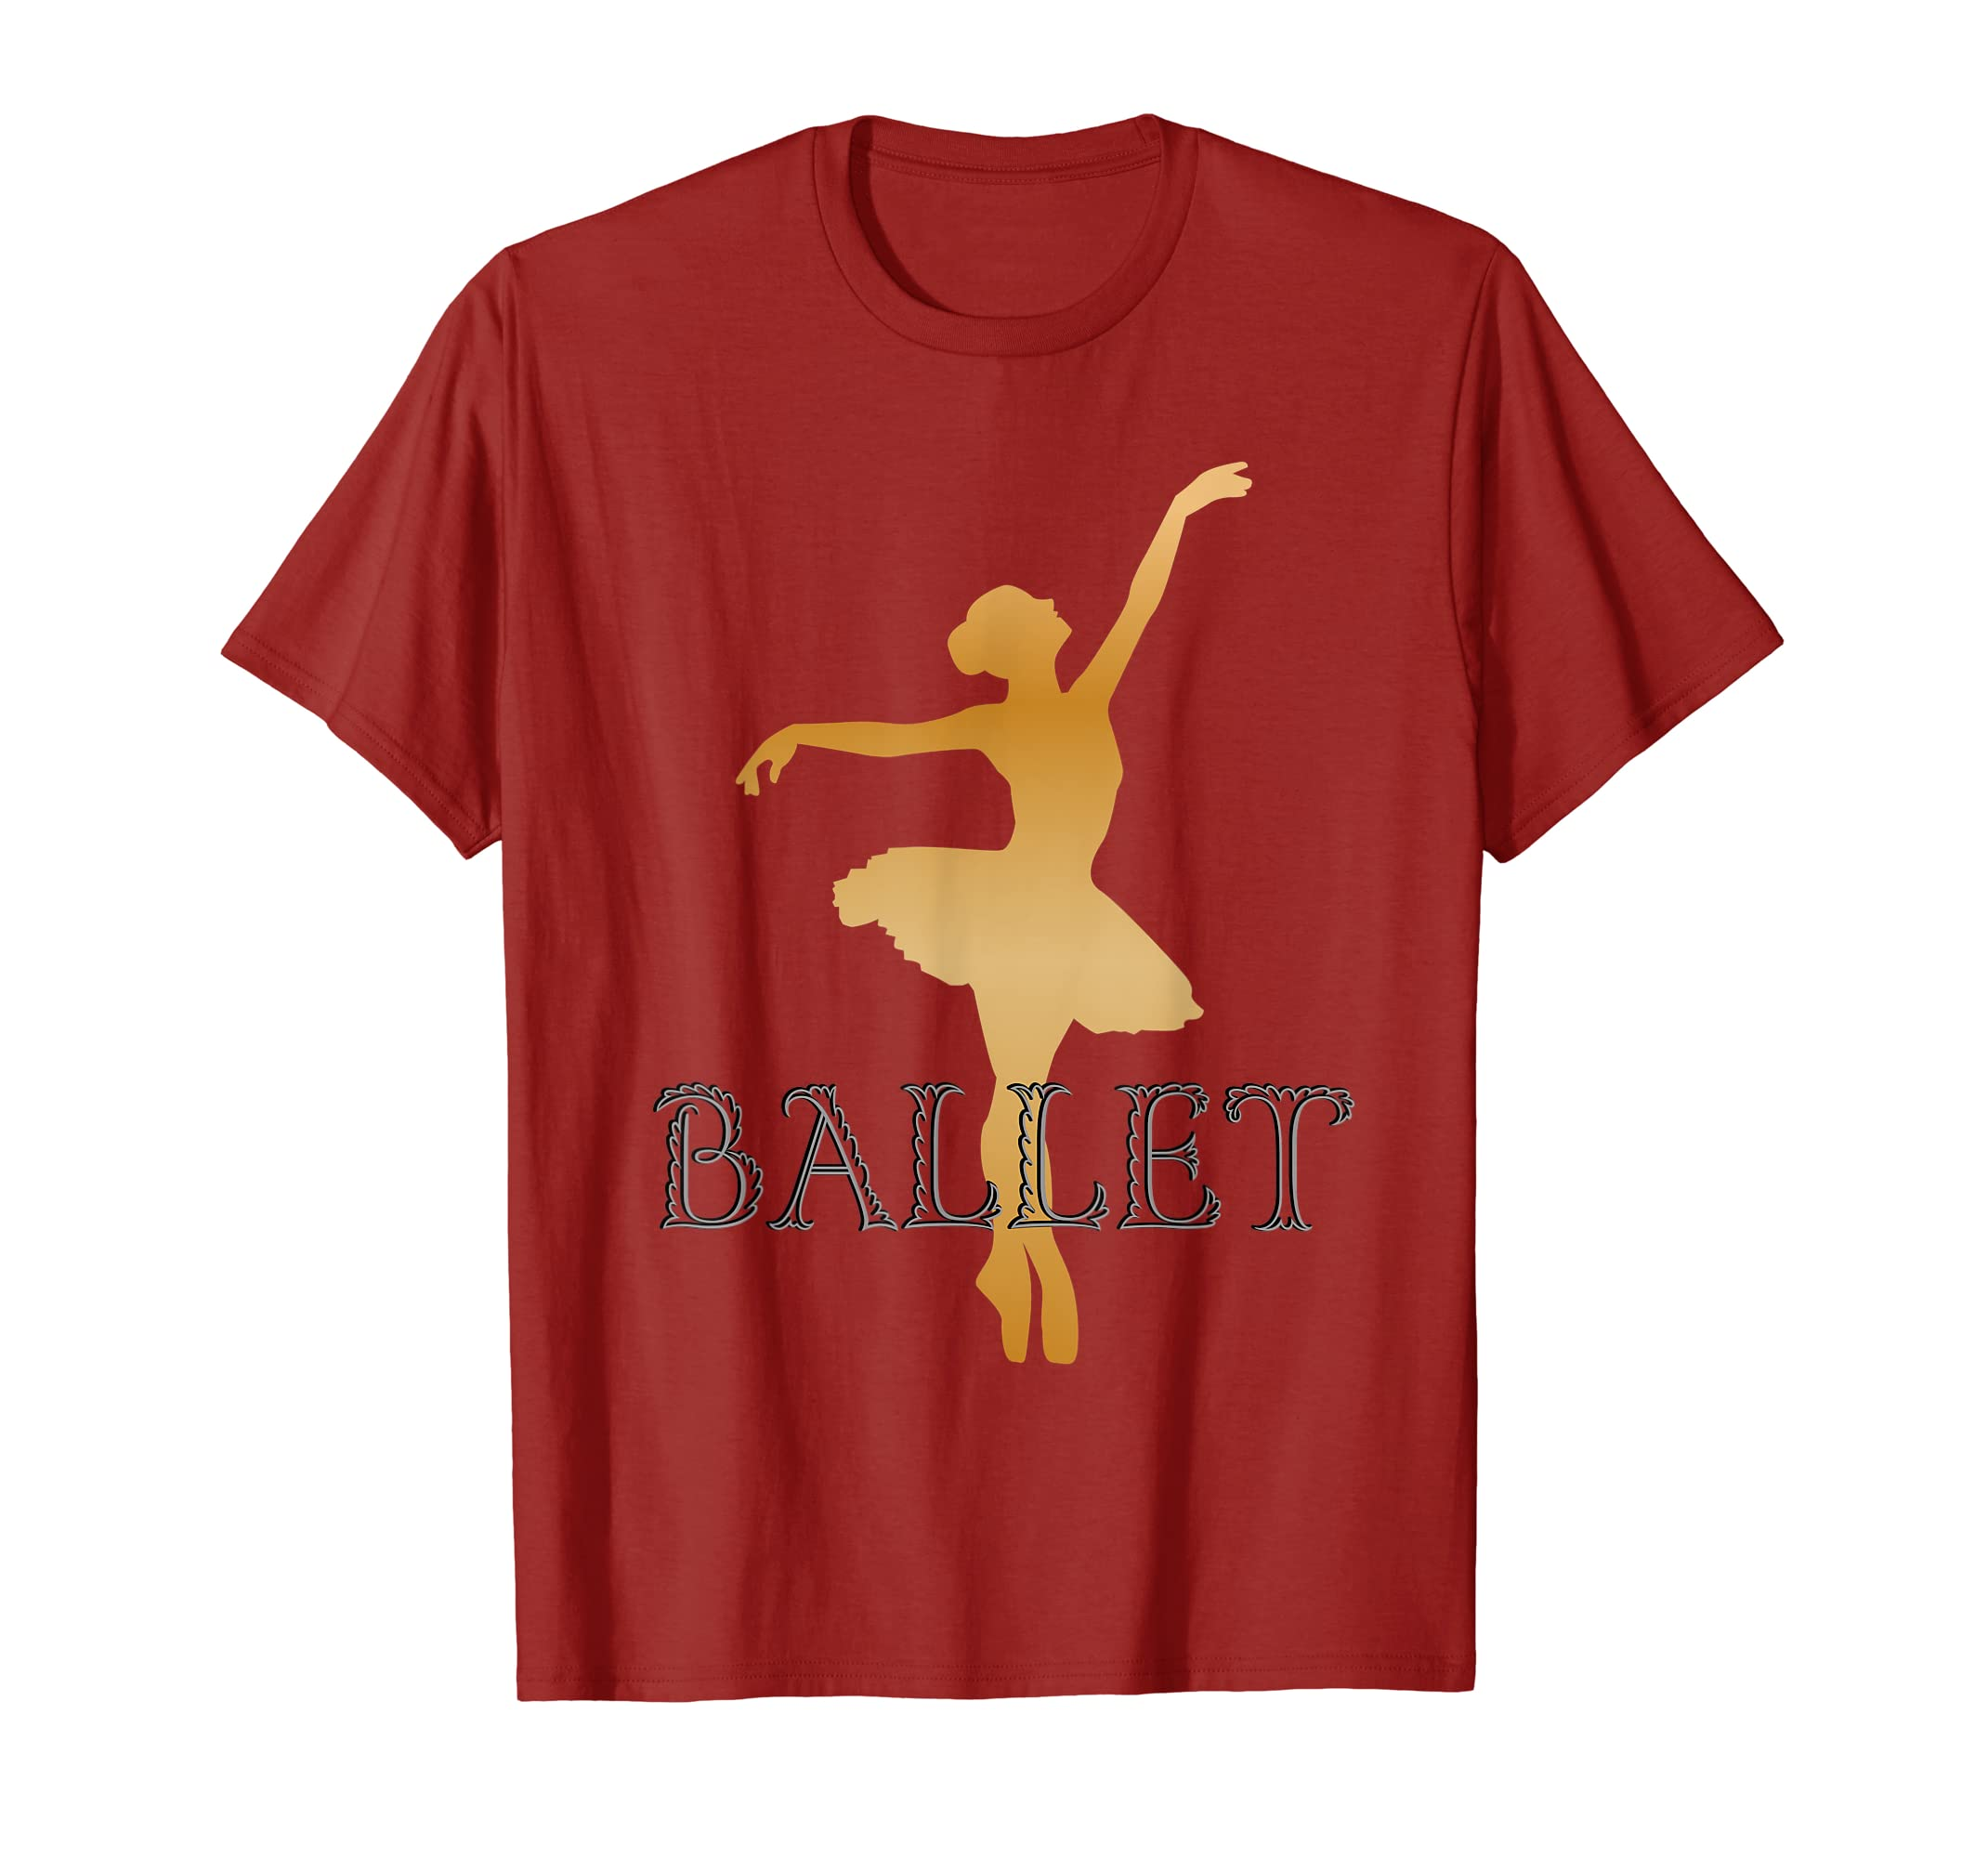 a10a3774b Amazon.com  Ballet Art T Shirt Kids Girls Ballerina  Clothing